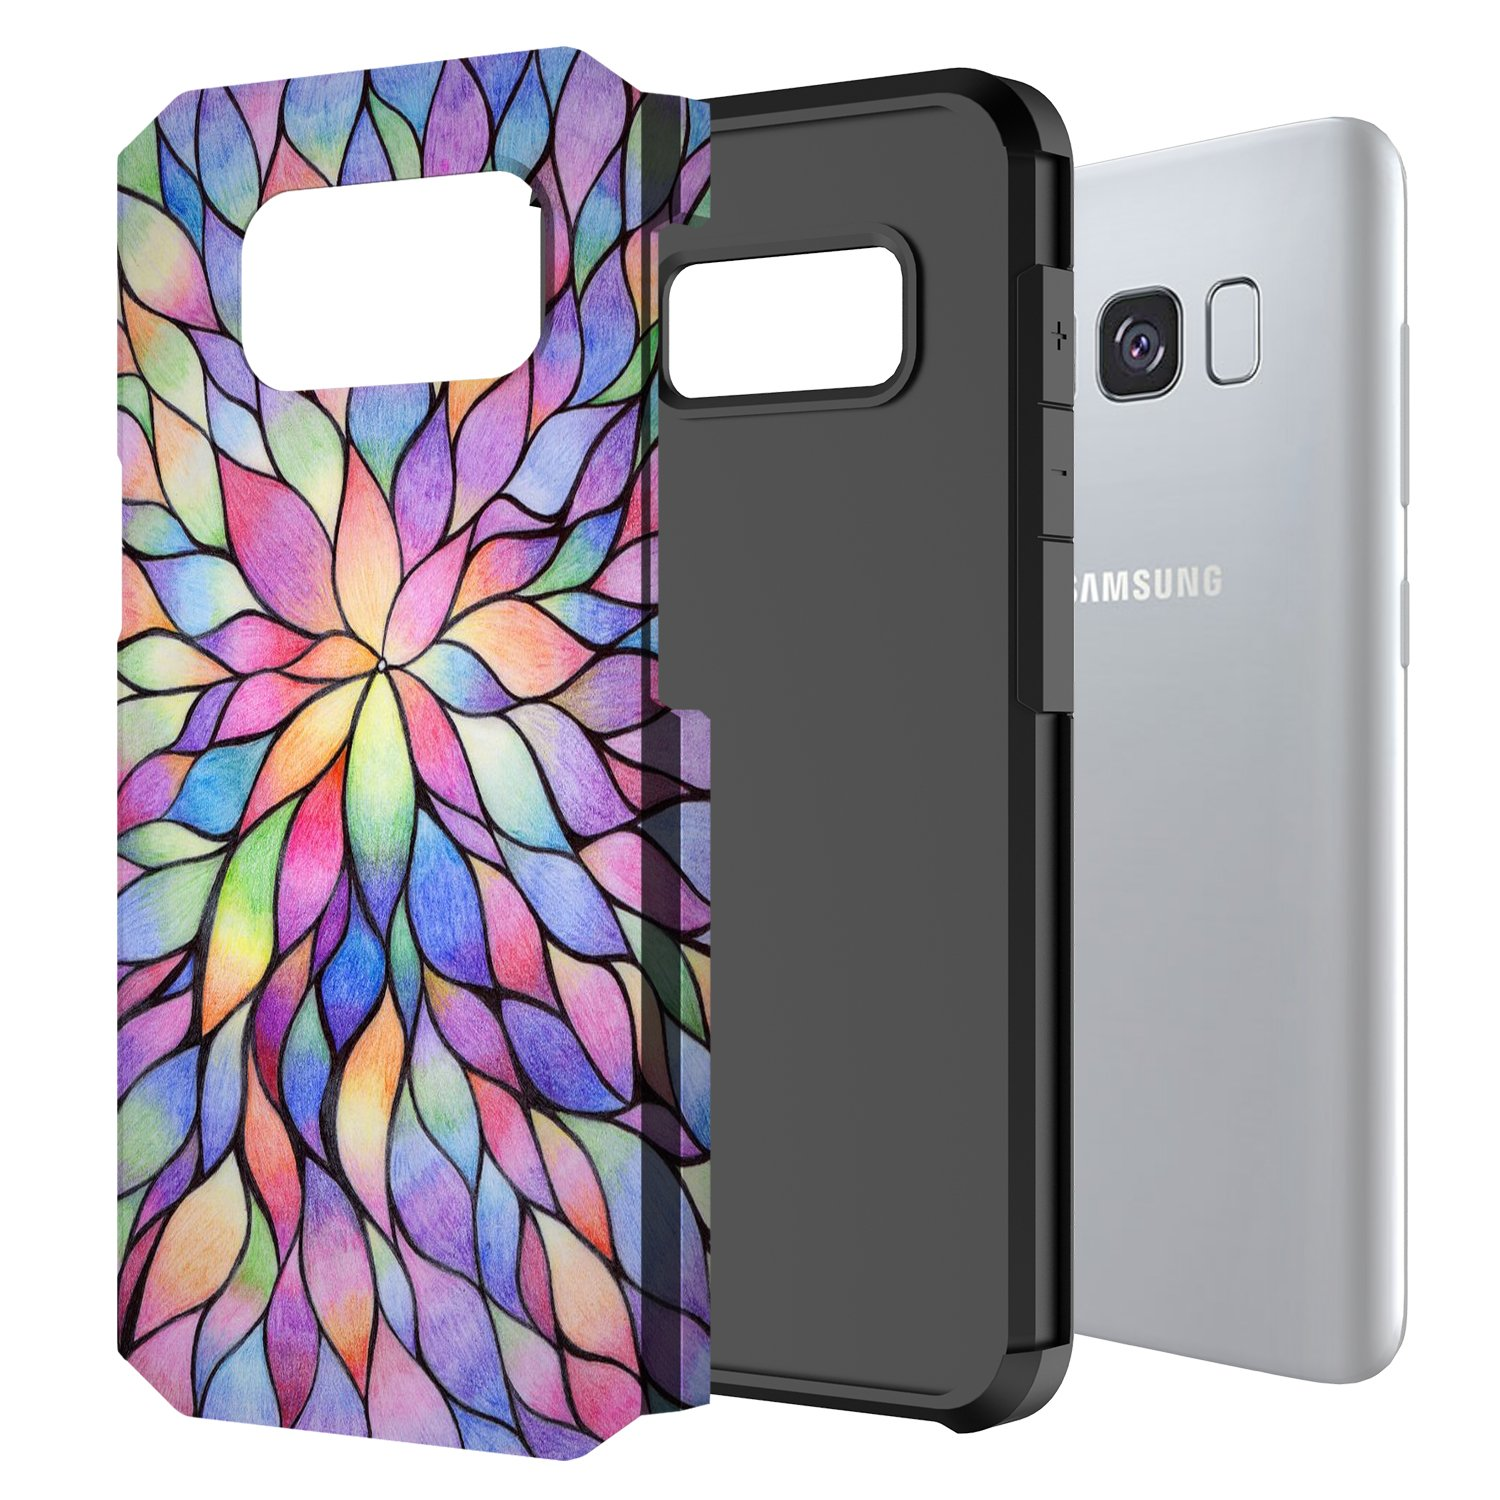 Galaxy S8 Case, GORGCASE [Drop Protection] Dual Layer Graphic Designed Shockproof Hard Hybird Slim Defender Armor Protector Cover for Samsung Galaxy S8 (COLORFUL PETALS) by GORGCASE (Image #2)